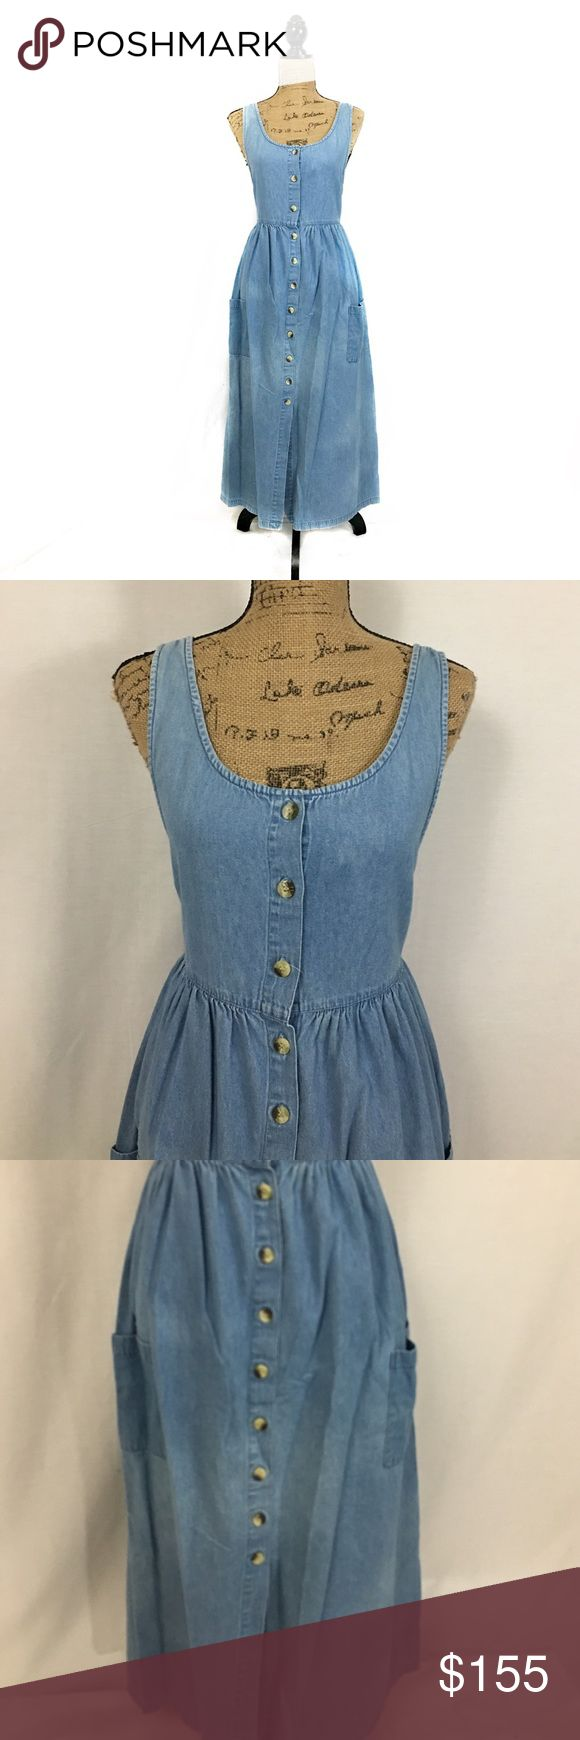 Boho Coachella denim midi dress Amazing denim midi dress. Button down in the front. Tie in the back to get he fit just right. Size small. Approx length 47 inches. Bust 18 inches approx. waist 16.5 inches untied approx. hips free. 2 pockets. All buttons intact. Denim has lightening in spots which is how it was made overall variations in color of the denim are to be expected. Dresses Midi